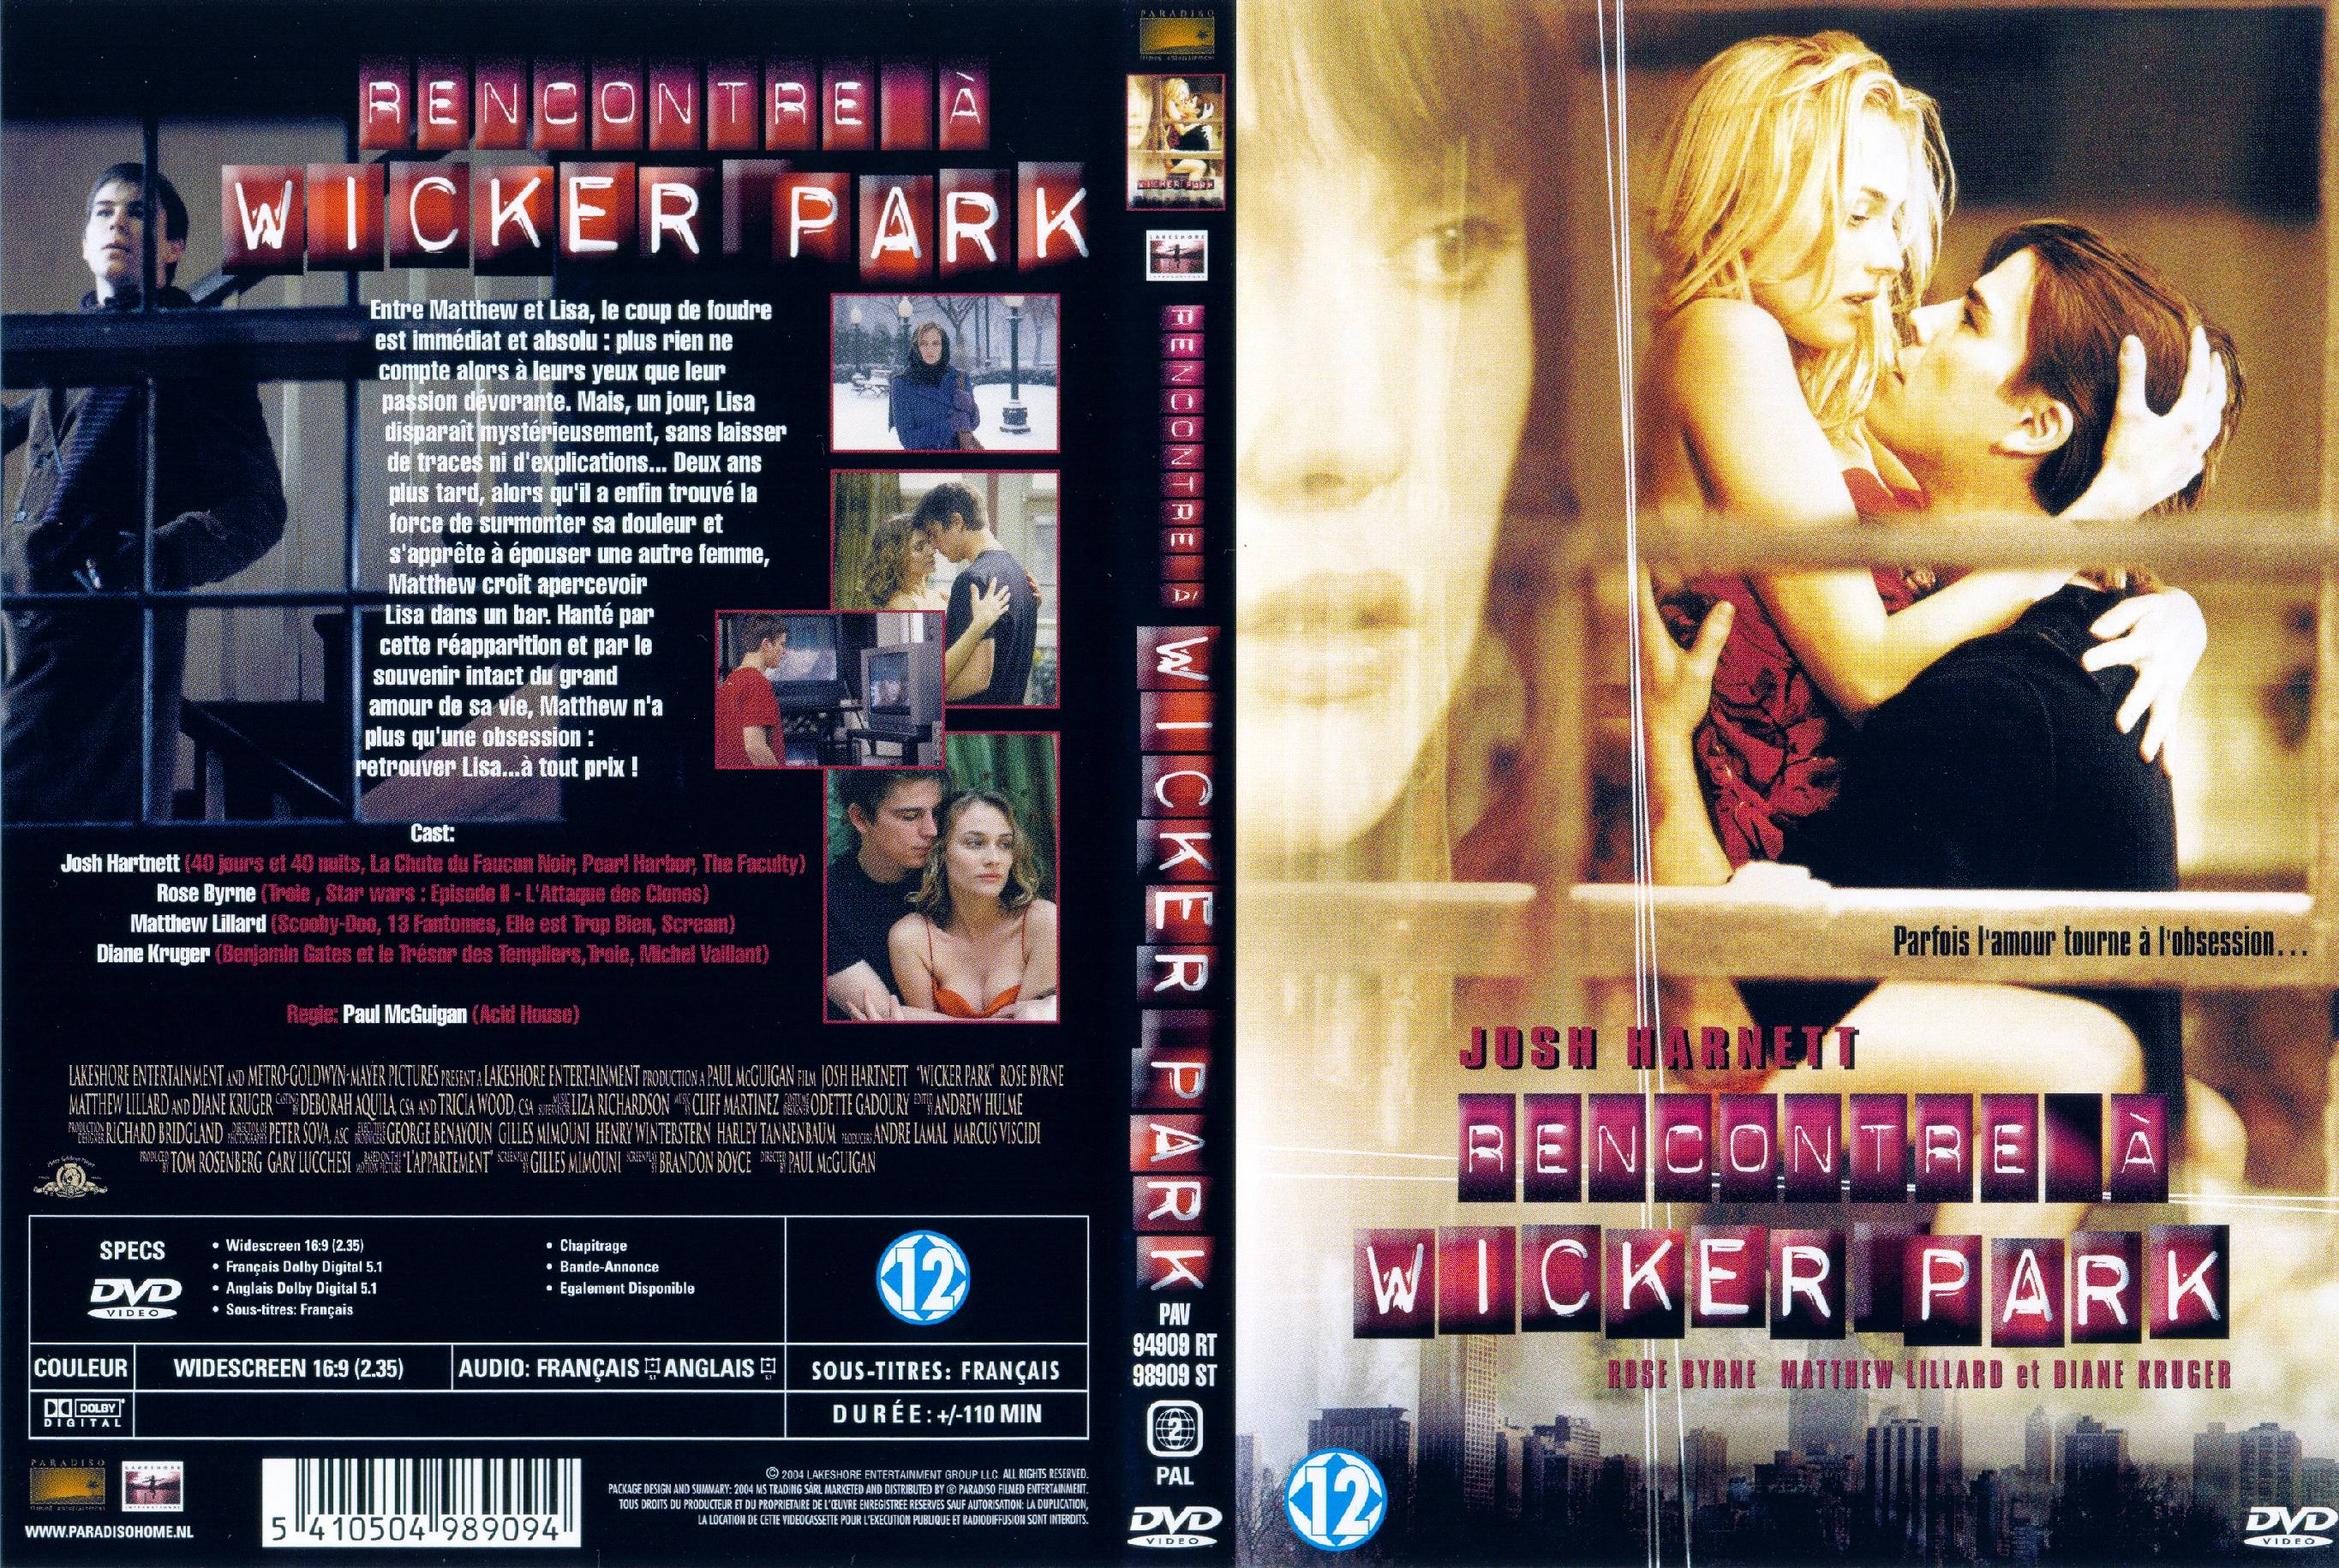 jaquette dvd rencontre a wicker park)